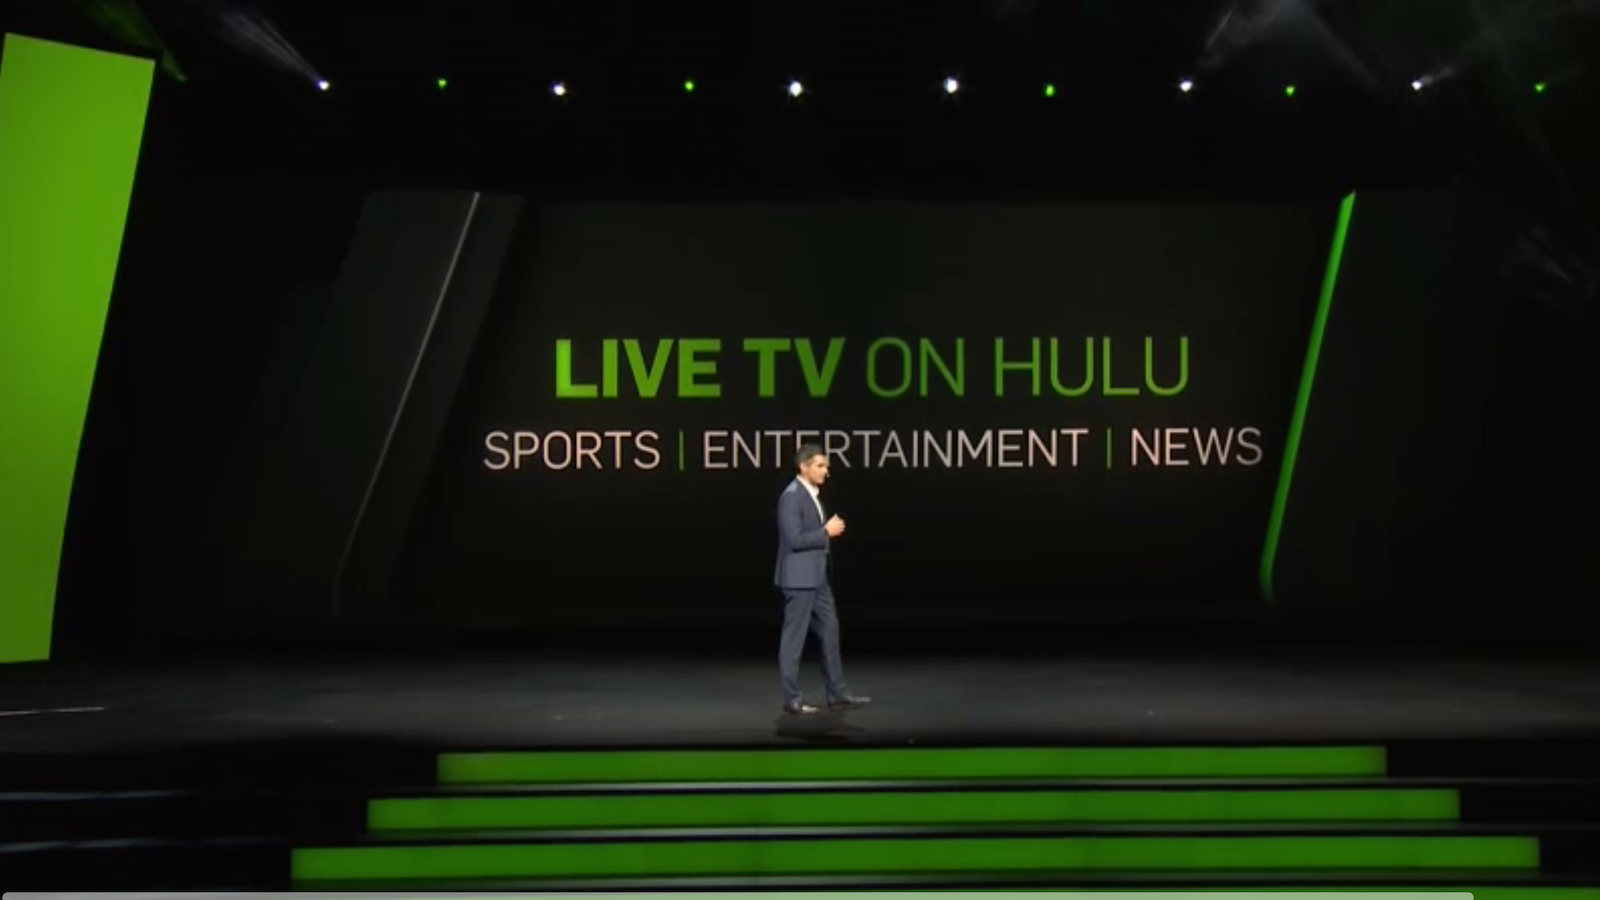 Hulu confirms plan to stream live TV in 2017